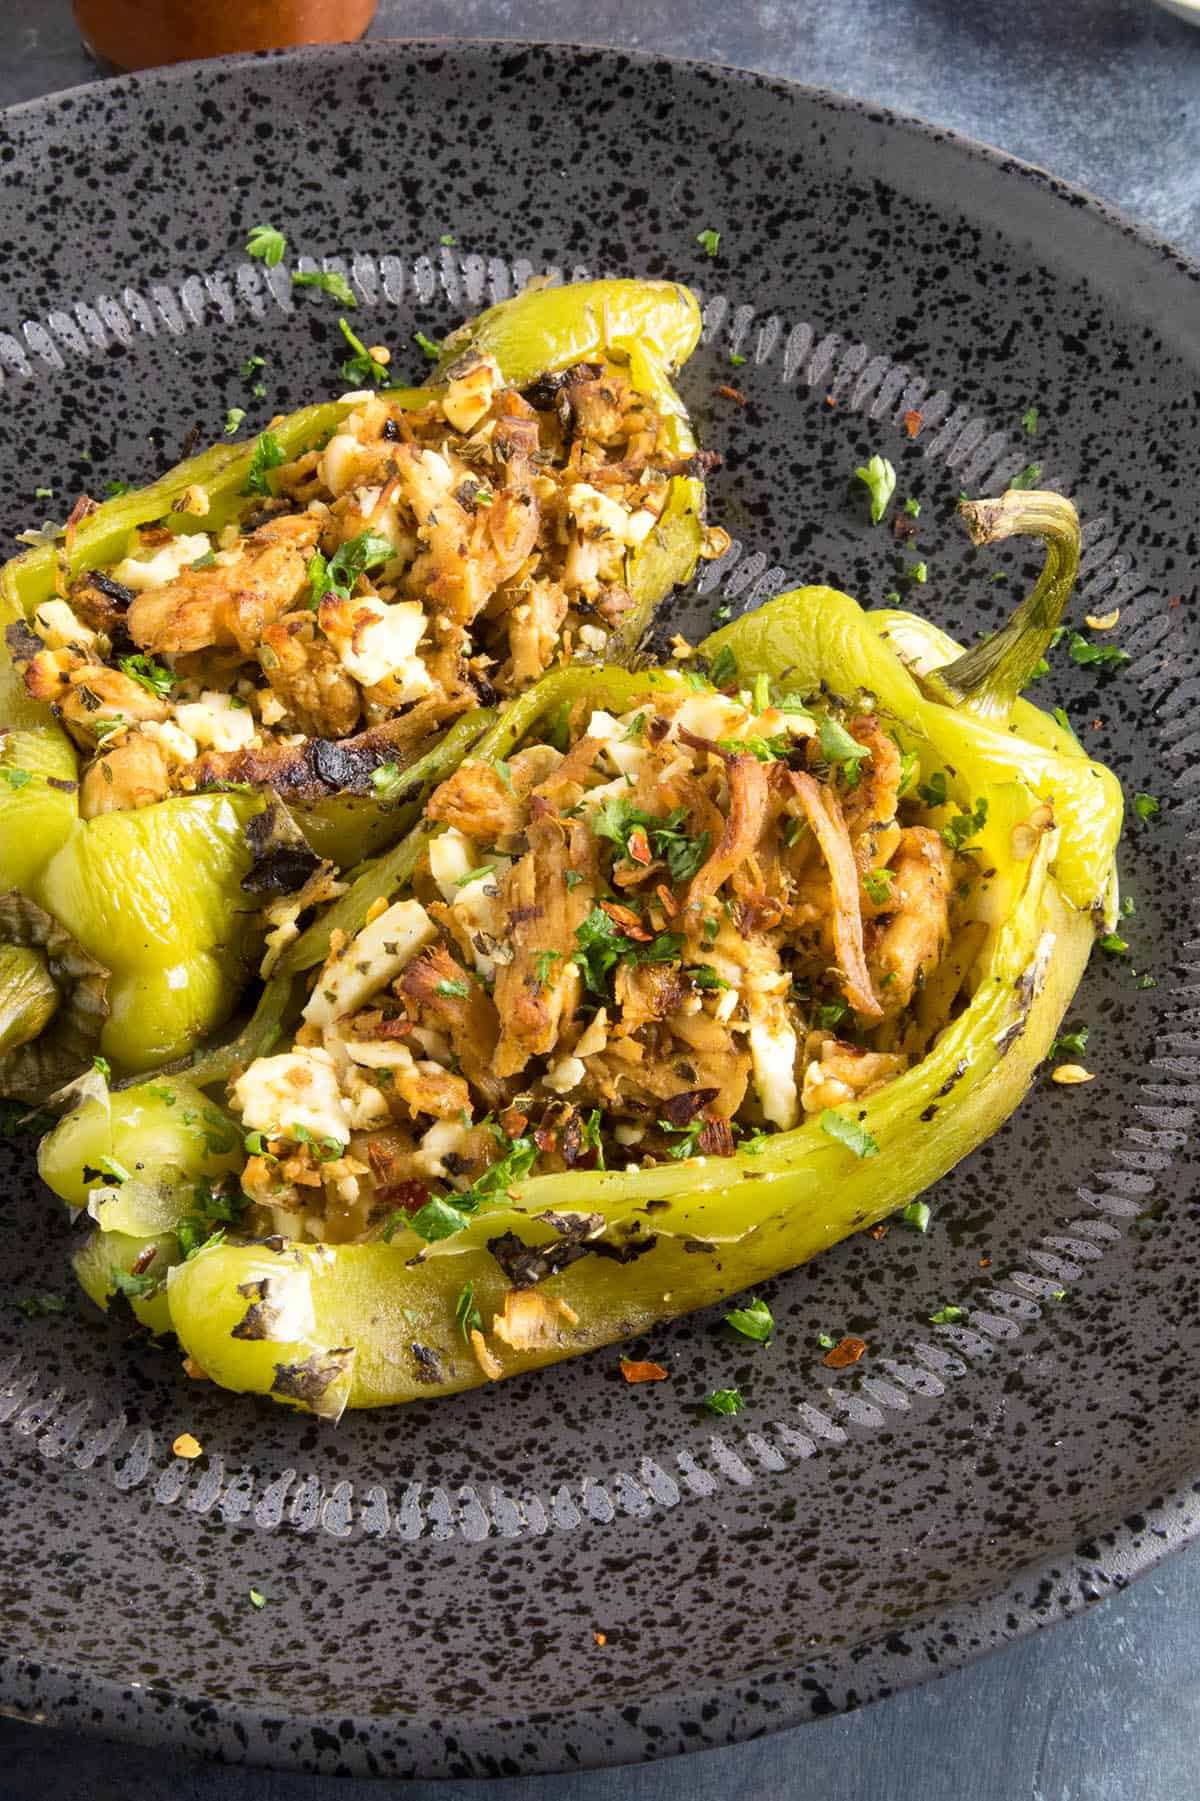 Chicken and Cheese Stuffed Anaheim Peppers - On a plate